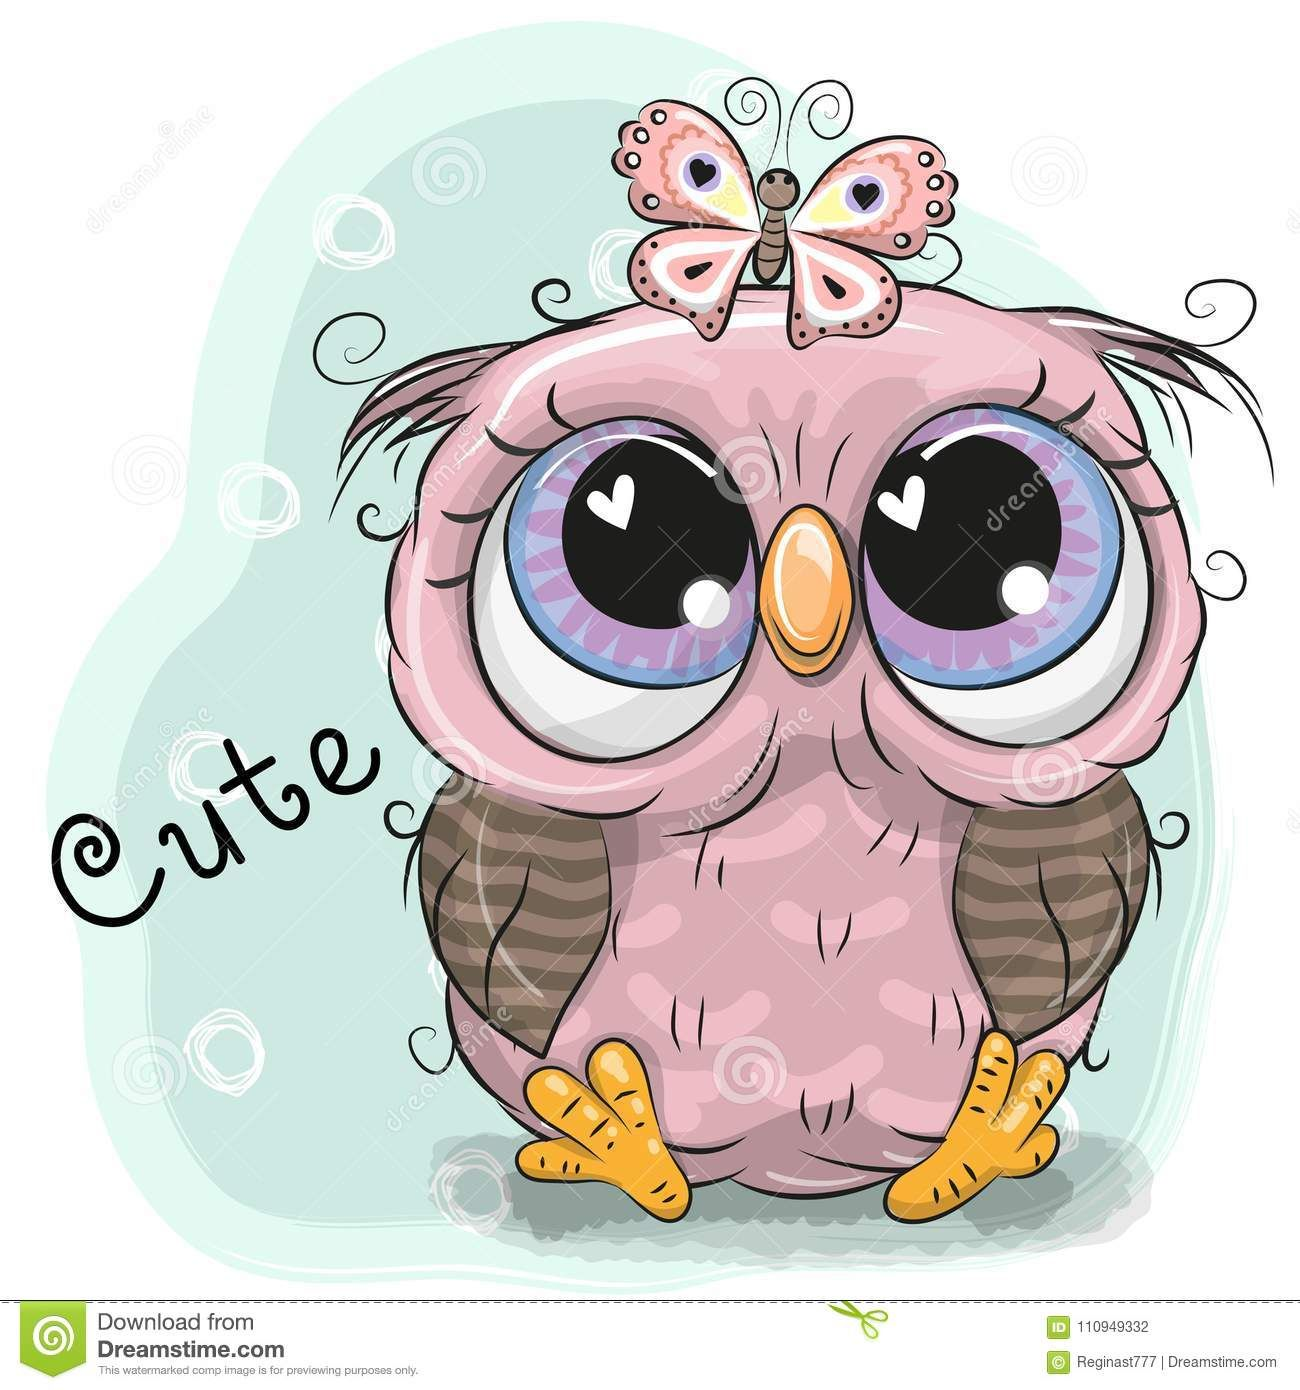 Illustration About Cute Drawing Owl Girl And Butterfly On A Blue Background Illustration Of People Color Charact Cute Owl Cartoon Owls Drawing Cute Drawings